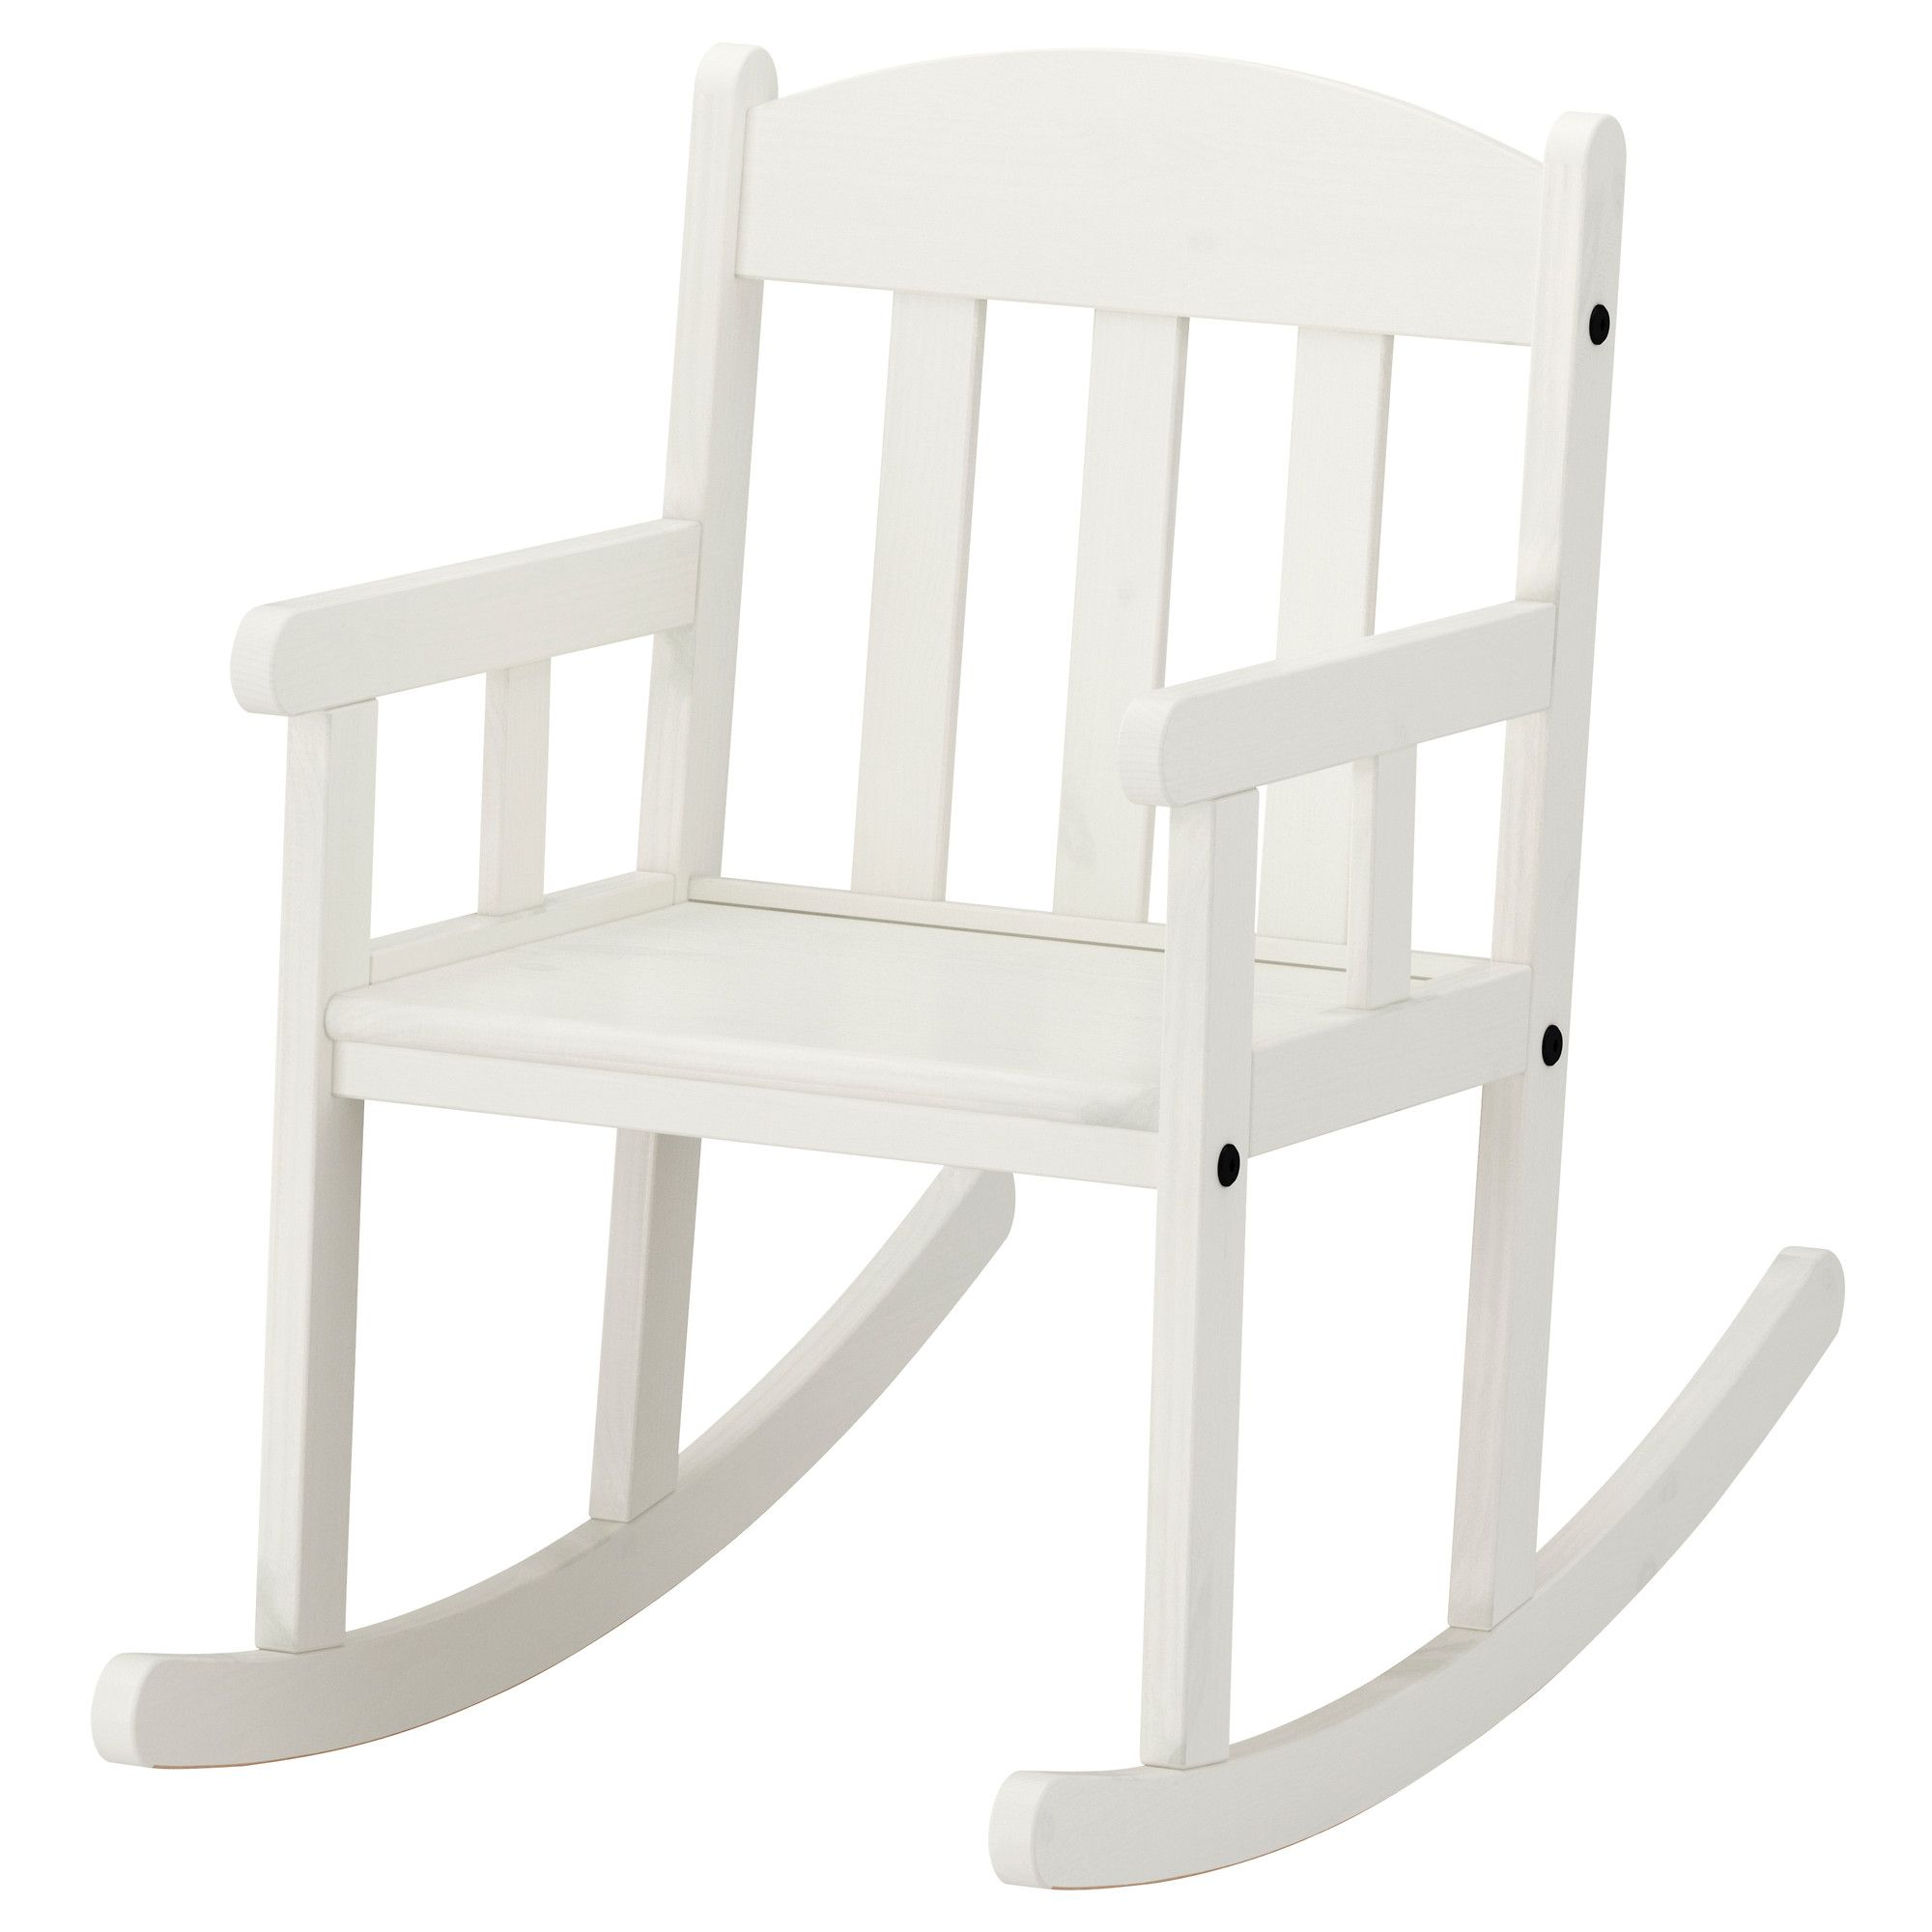 Chaise Rocking Chair Ikea Sundvik Childrens Rocking Chair Rocking Helps Develop